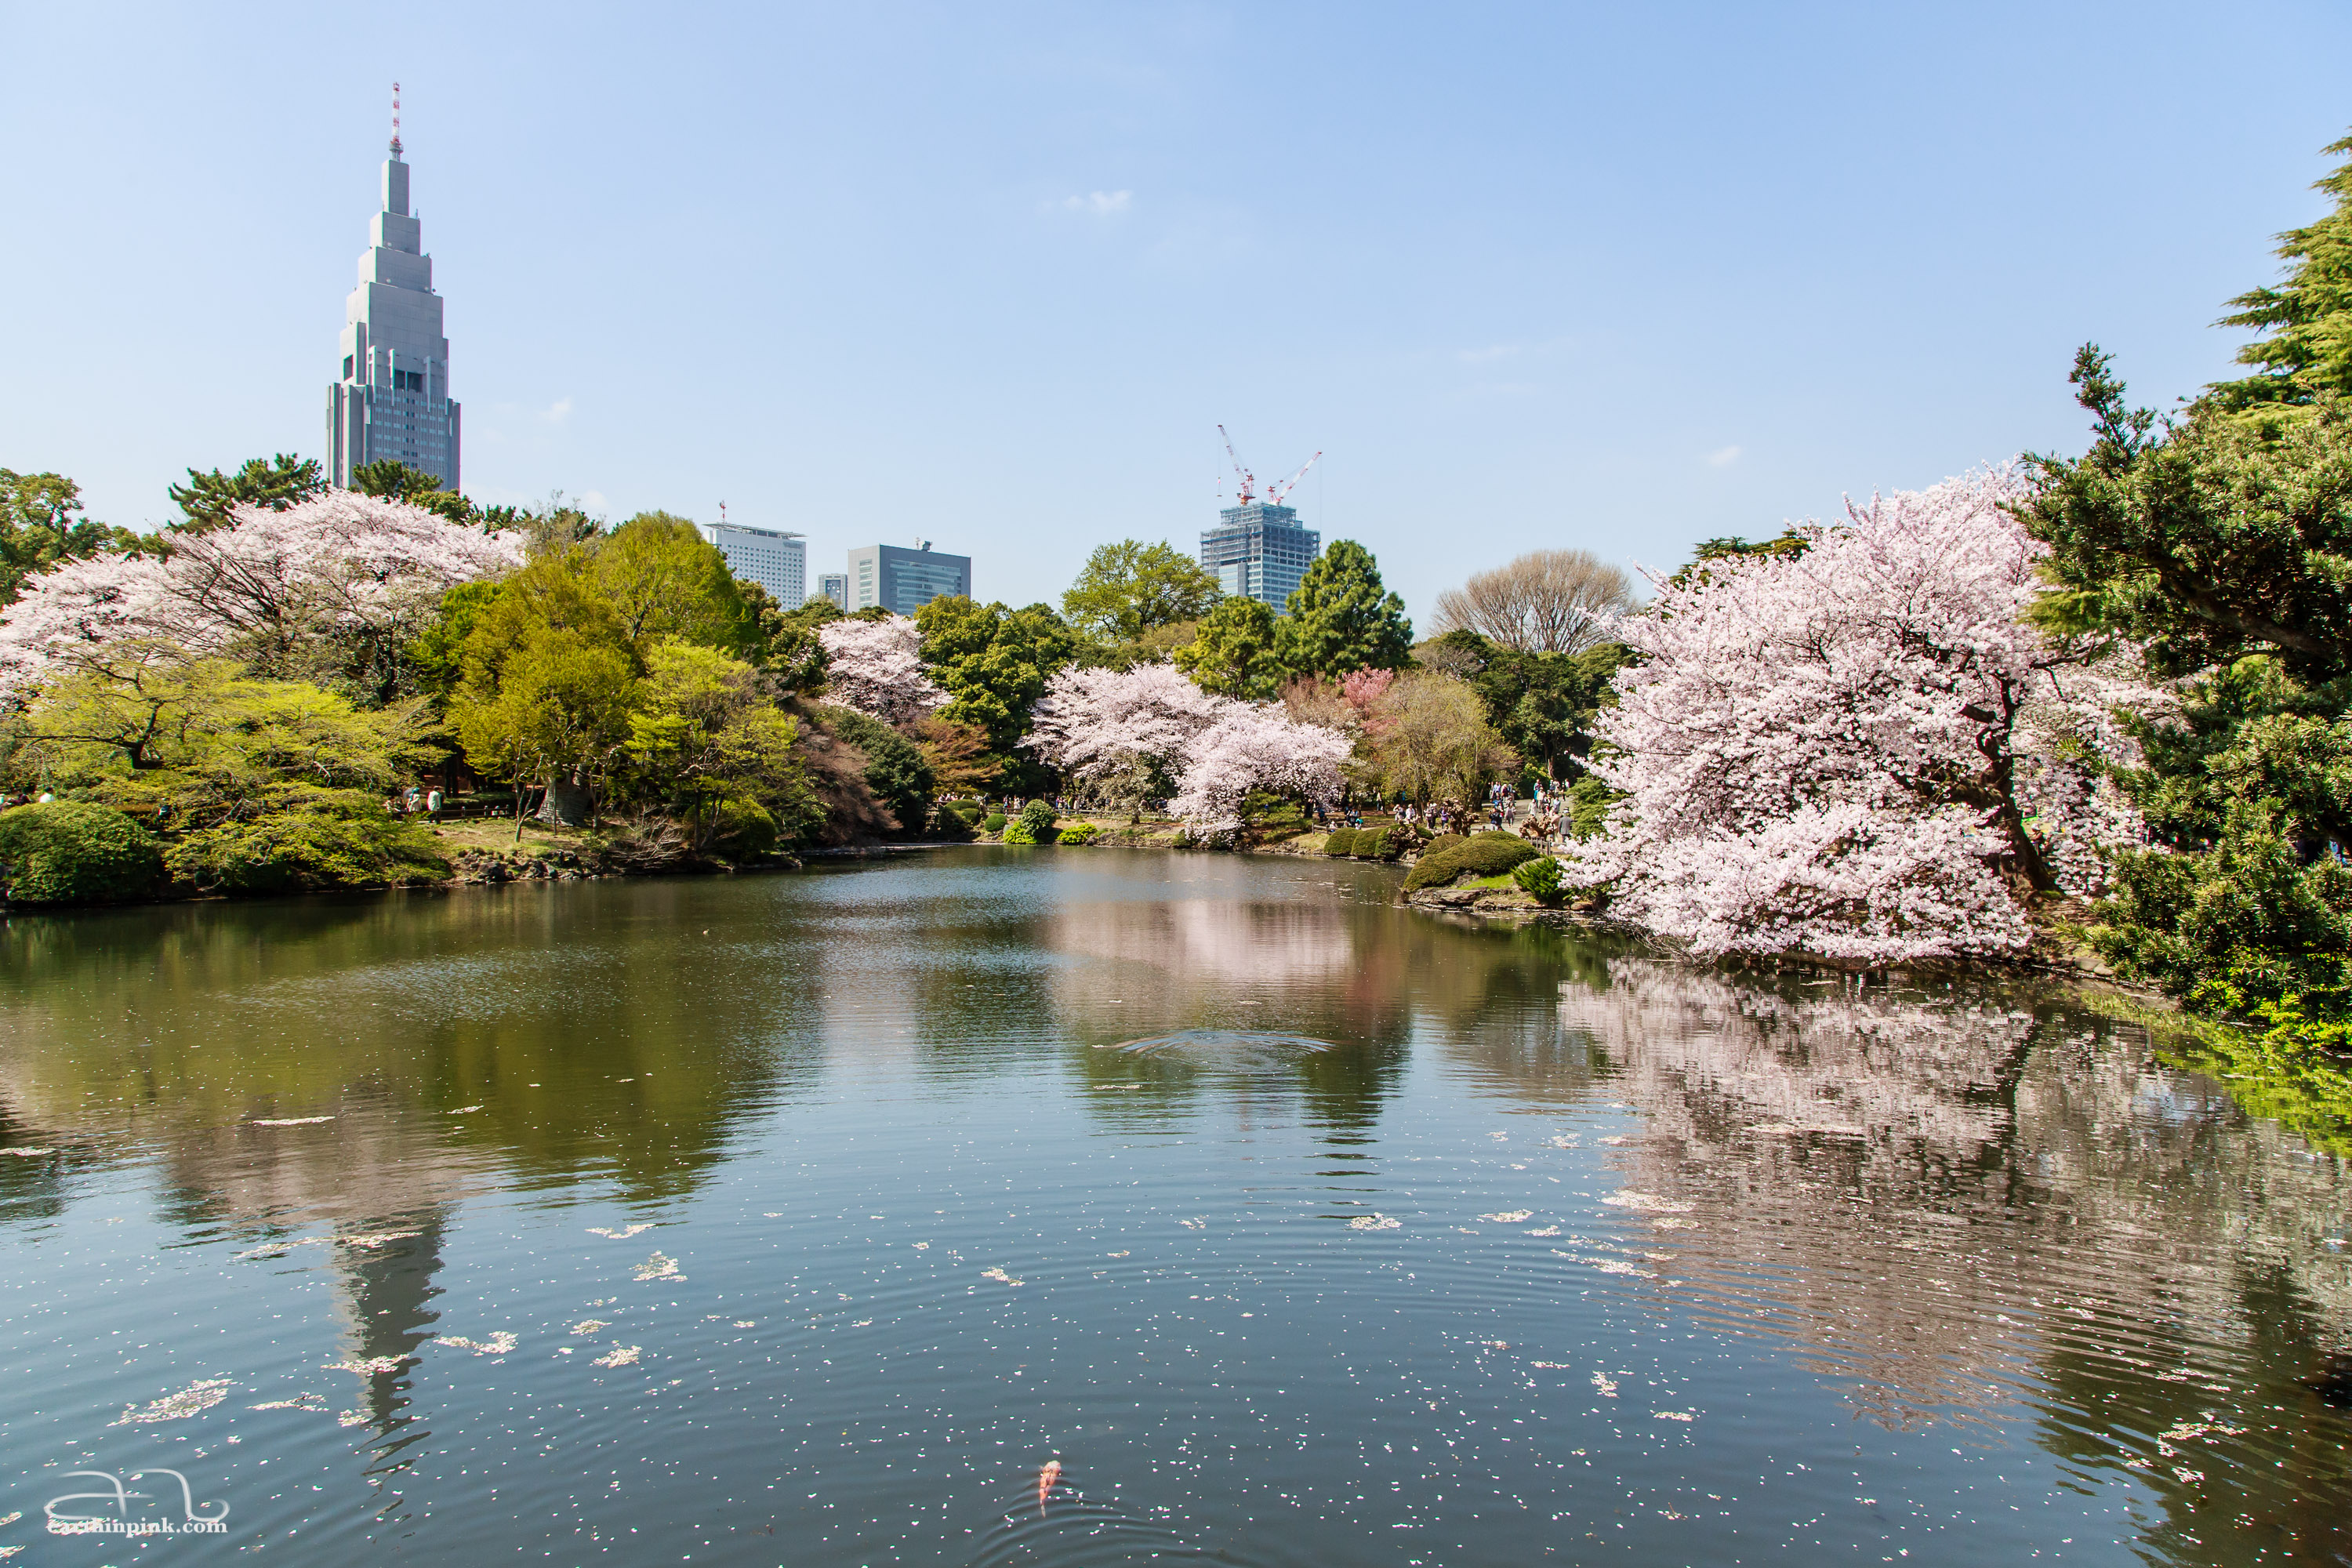 Shinjuku Gyoen gardens in full bloom